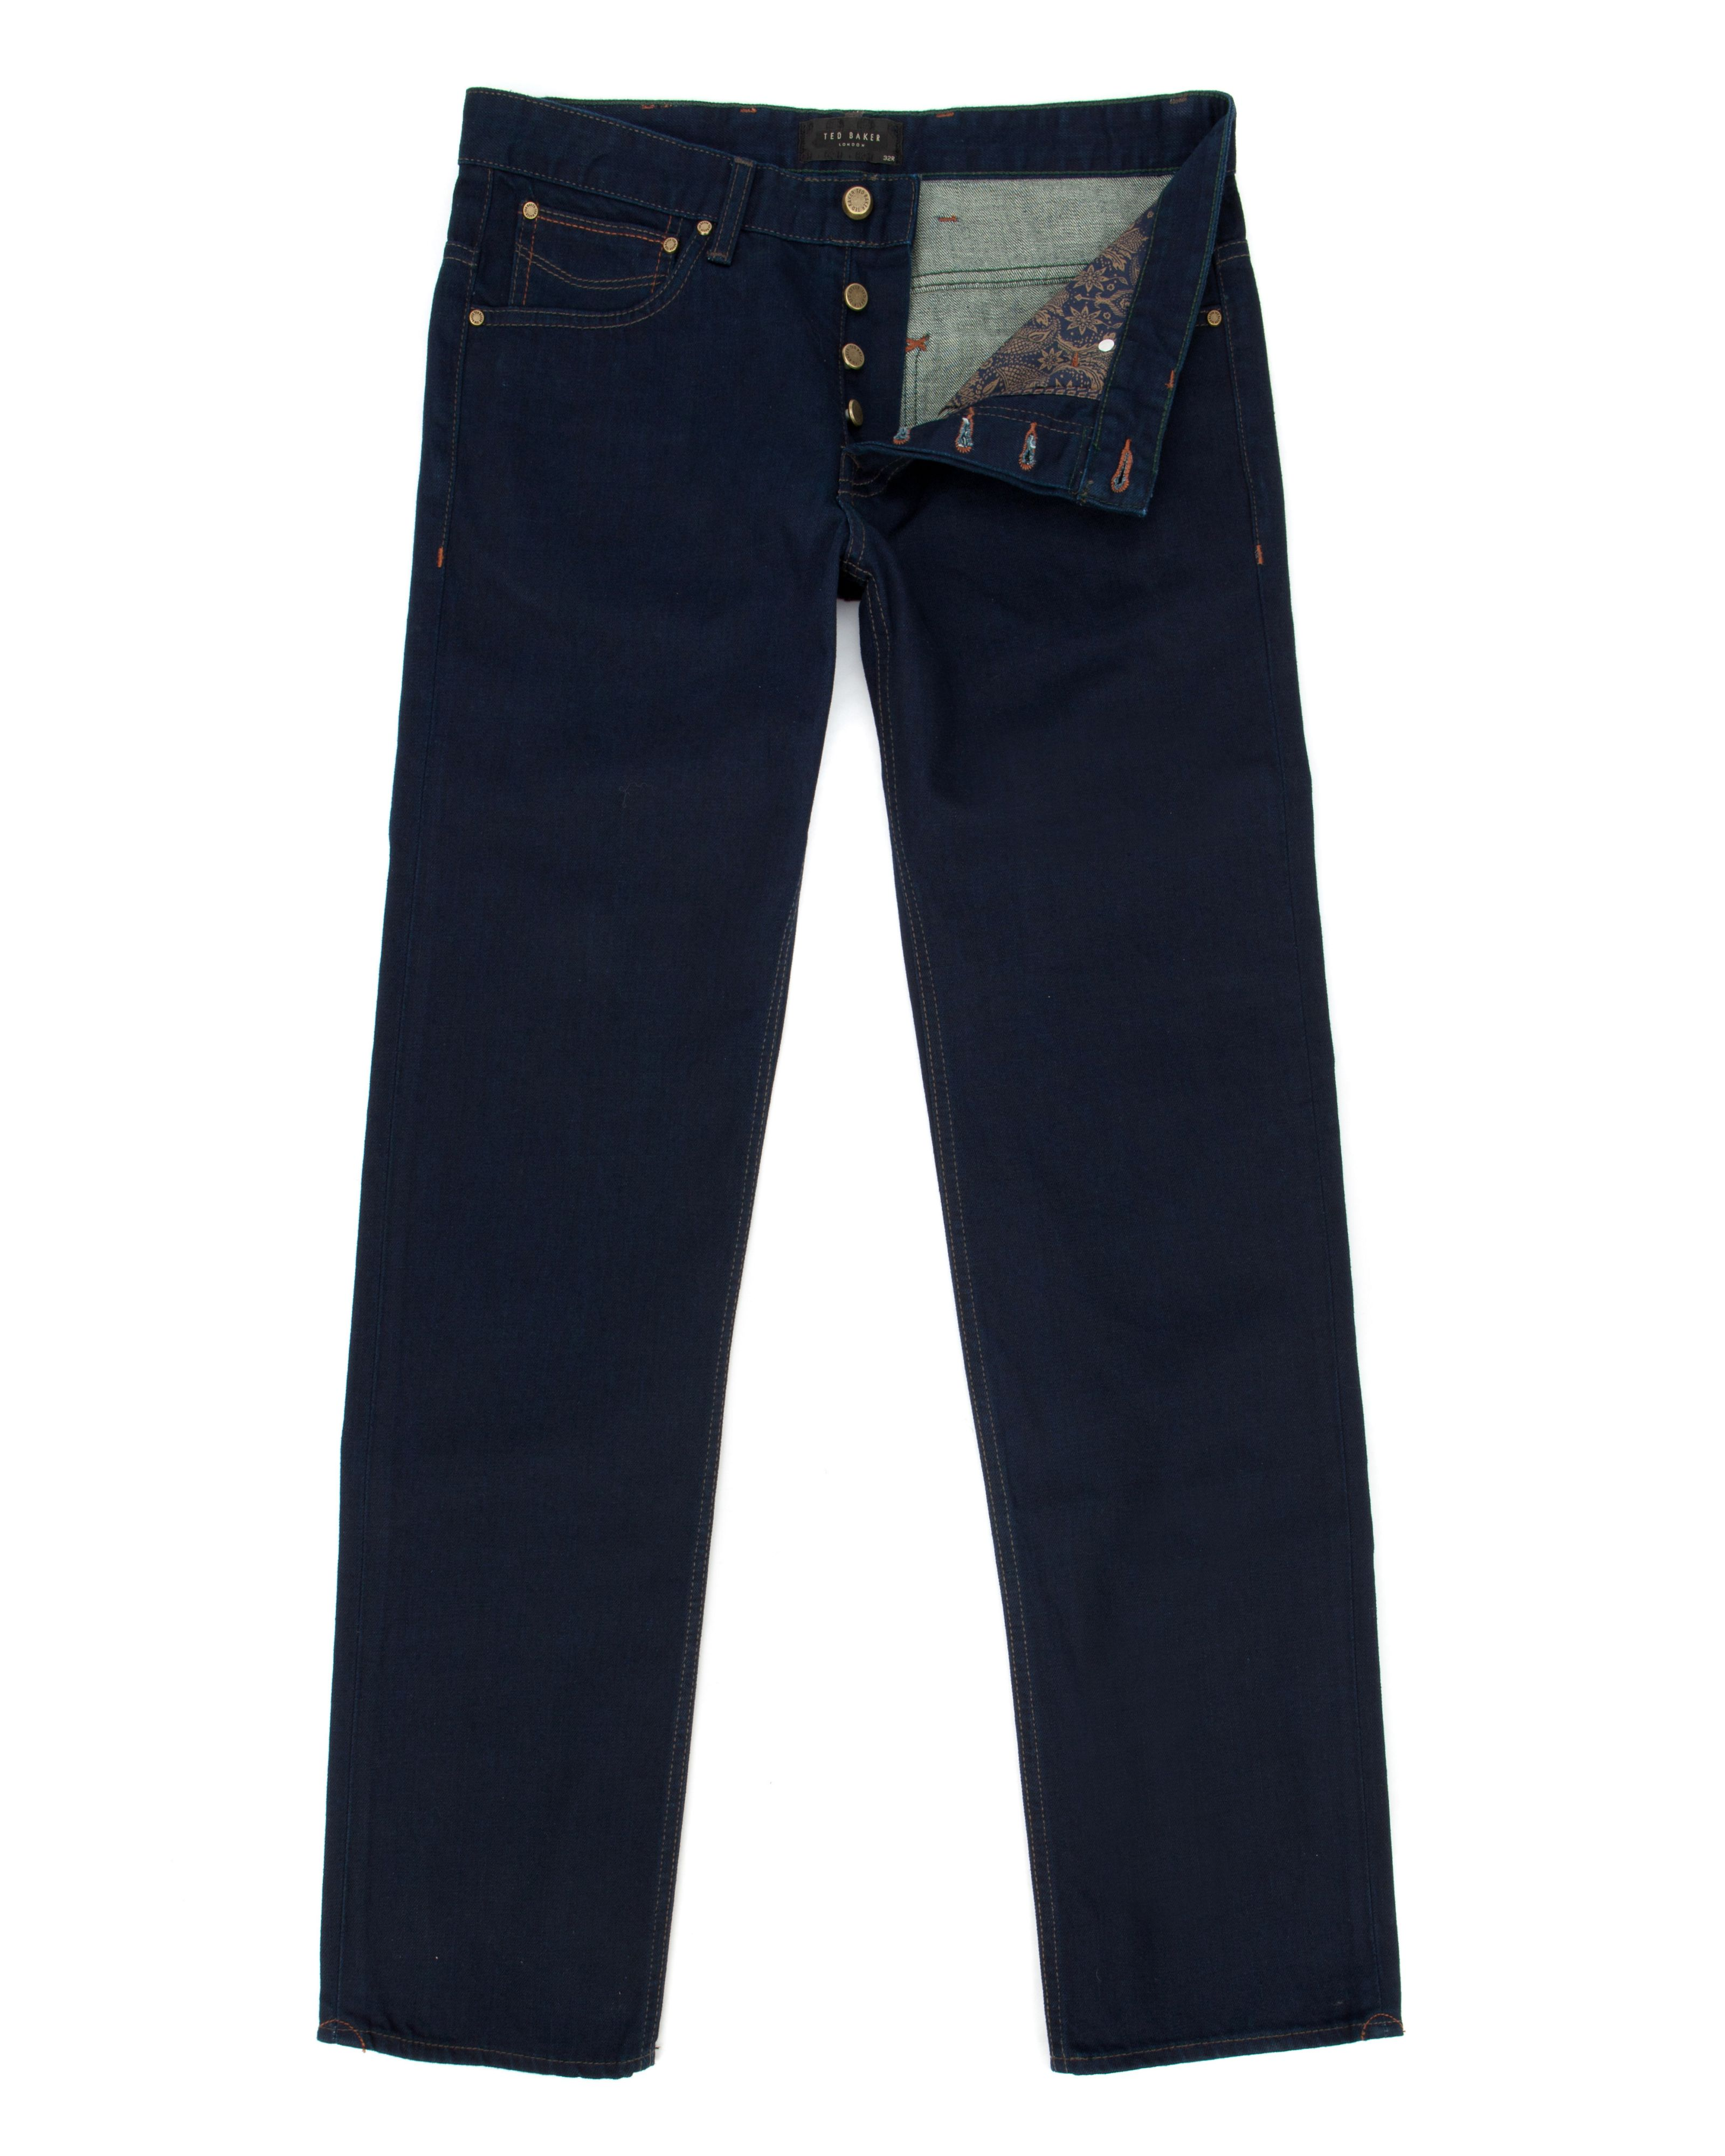 Selsey slim fit denim jeans